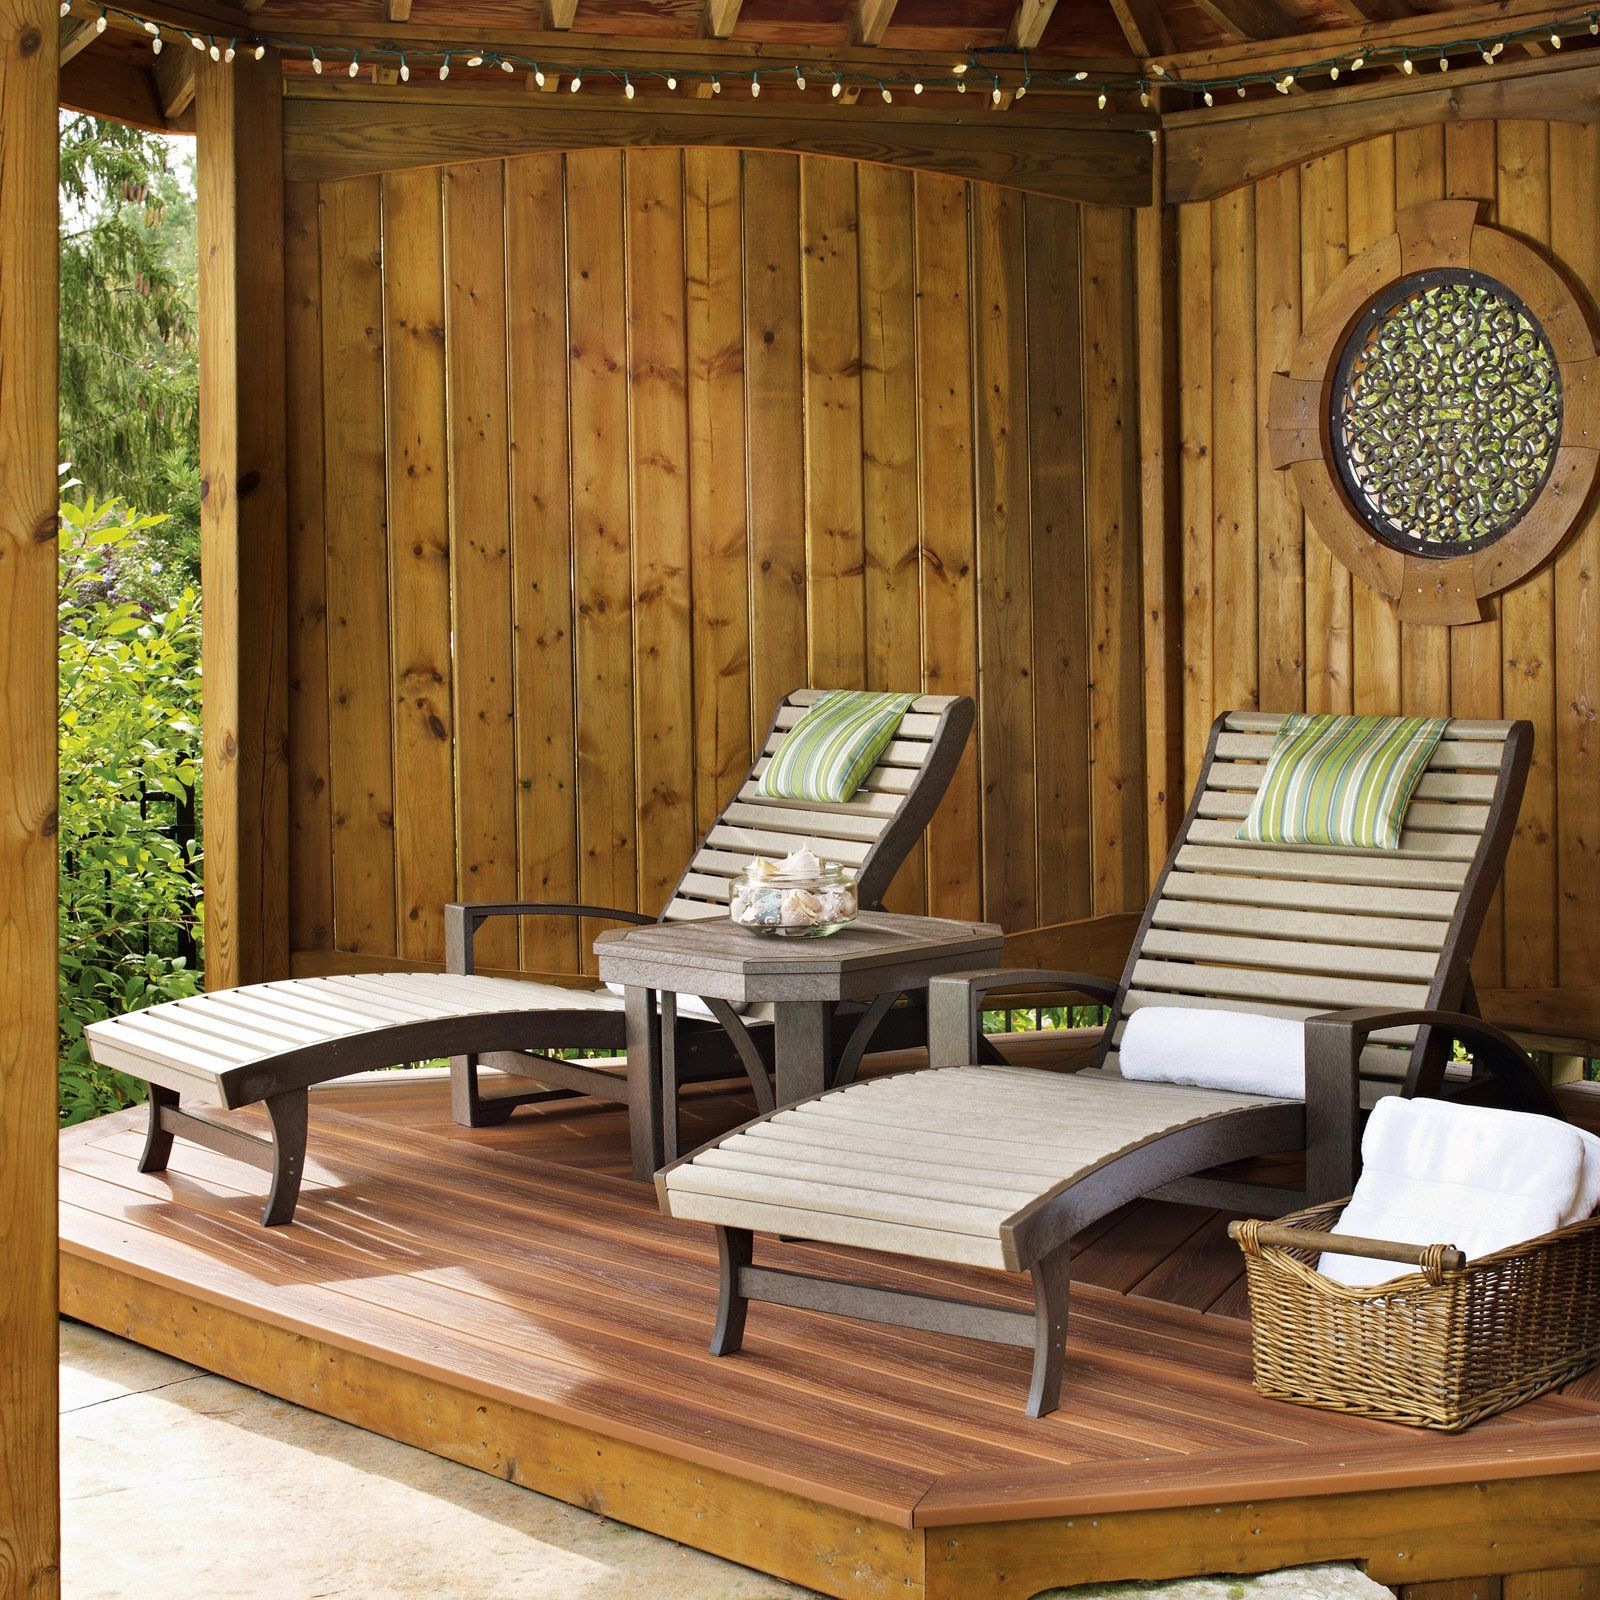 Outdoor Cr Plastic St Tropez Chaise Lounge With Wheels – L38 Inside Popular Plastic Chaise Lounges W/ Wheels (View 15 of 25)